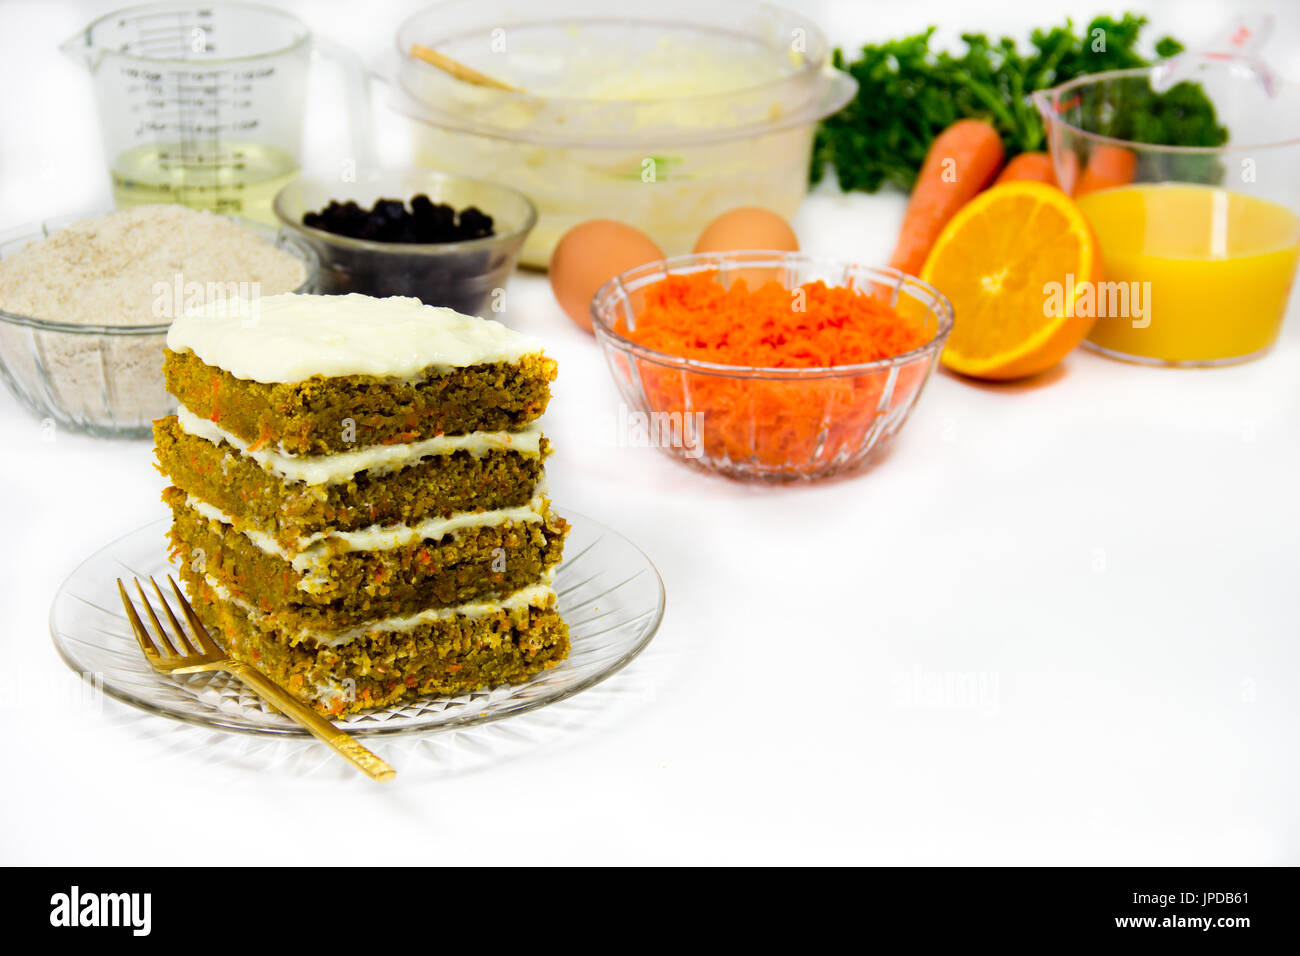 Recipe components surround a finished four-layer slice of carrot cake. - Stock Image